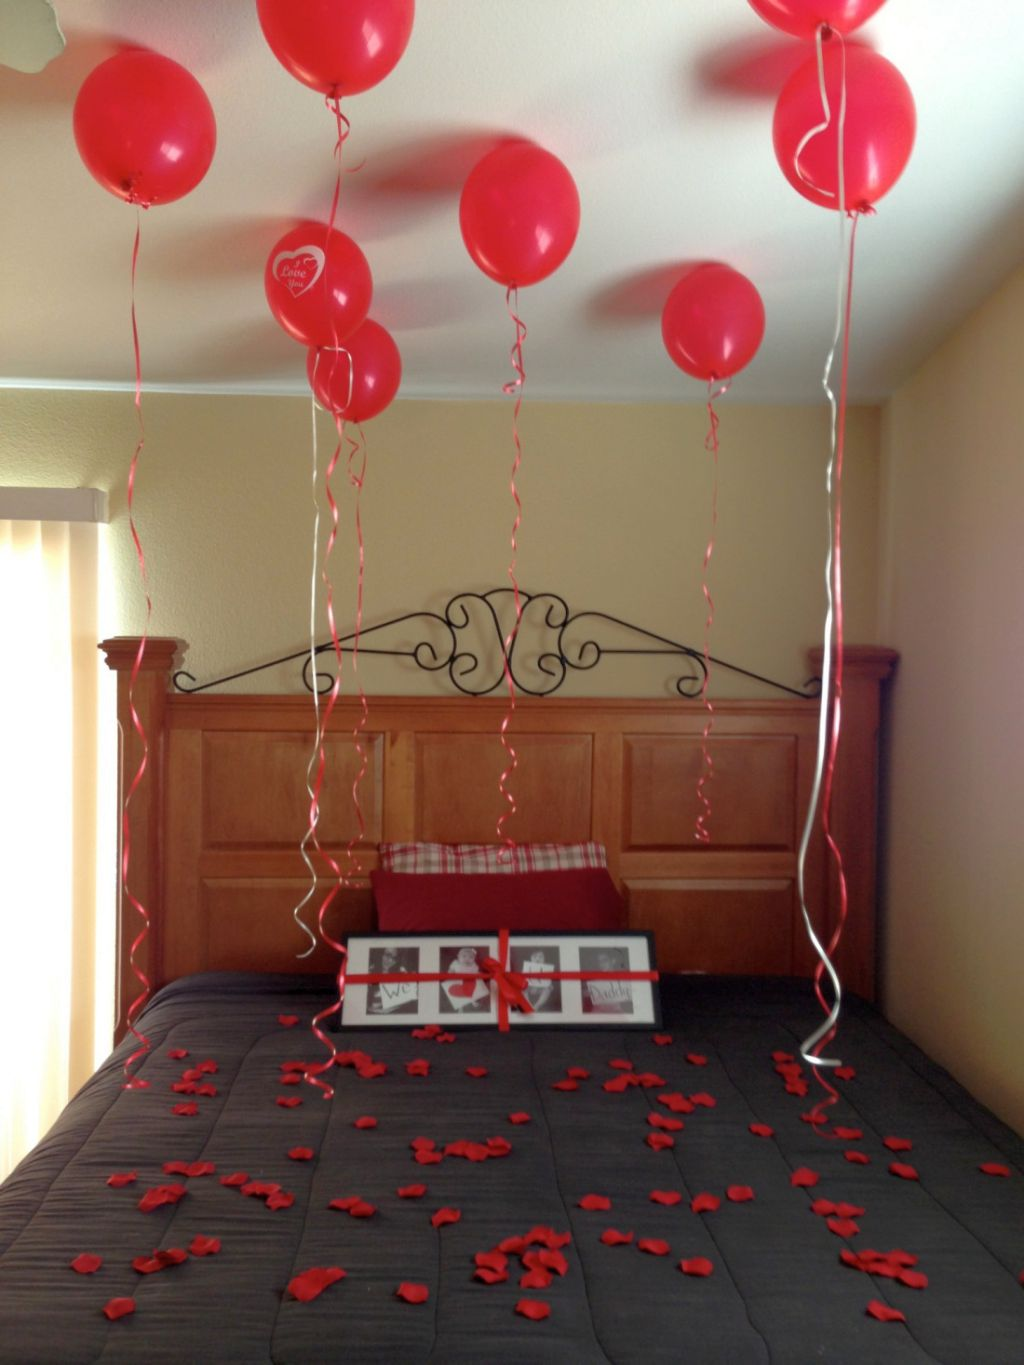 Easy diy bedroom decoration for valentines day with for Balloon decoration for valentines day